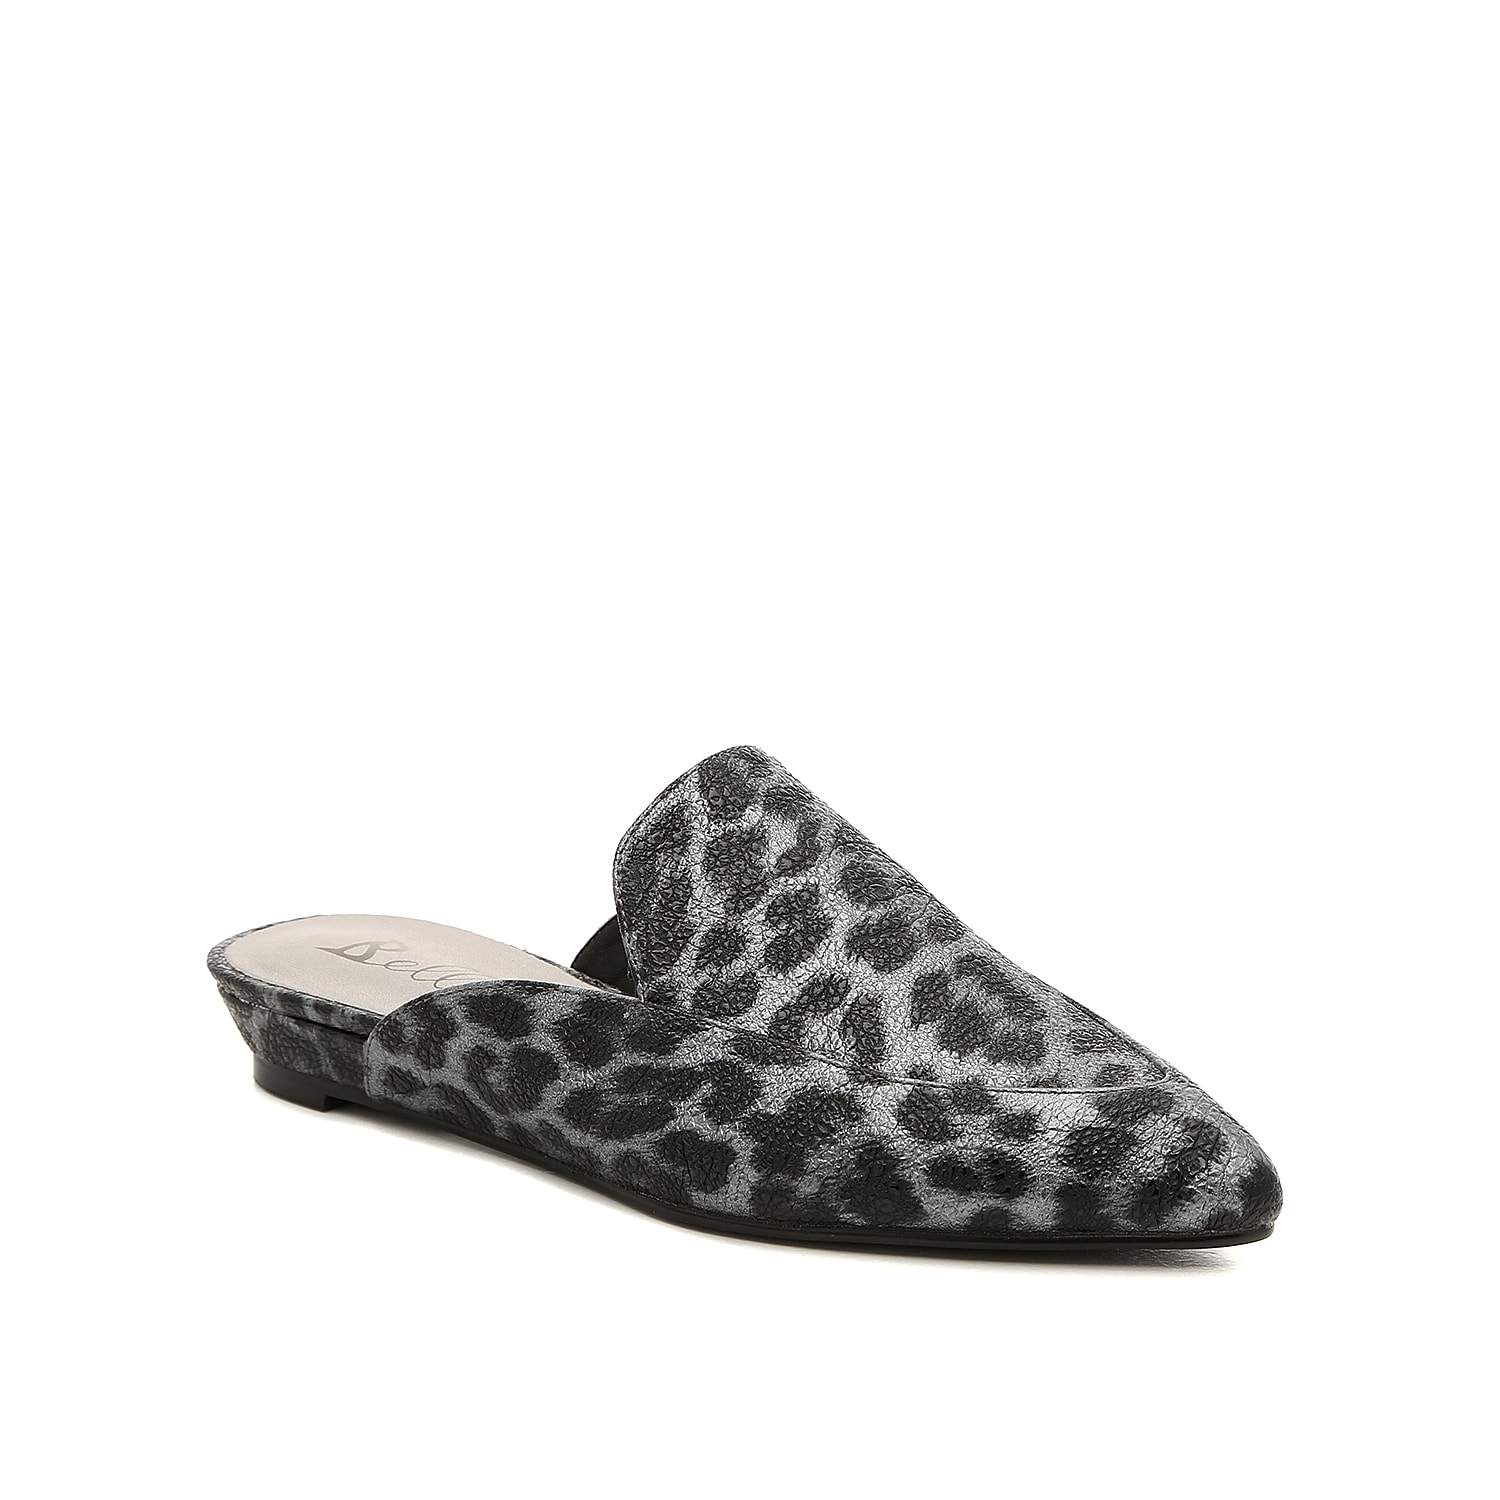 Take your ensemble to the next level with the Formosaleo mule froom Bellini. This silhouette is fashioned with a textural, leopard print upper and a sliver wedge that will give you the perfect lift!